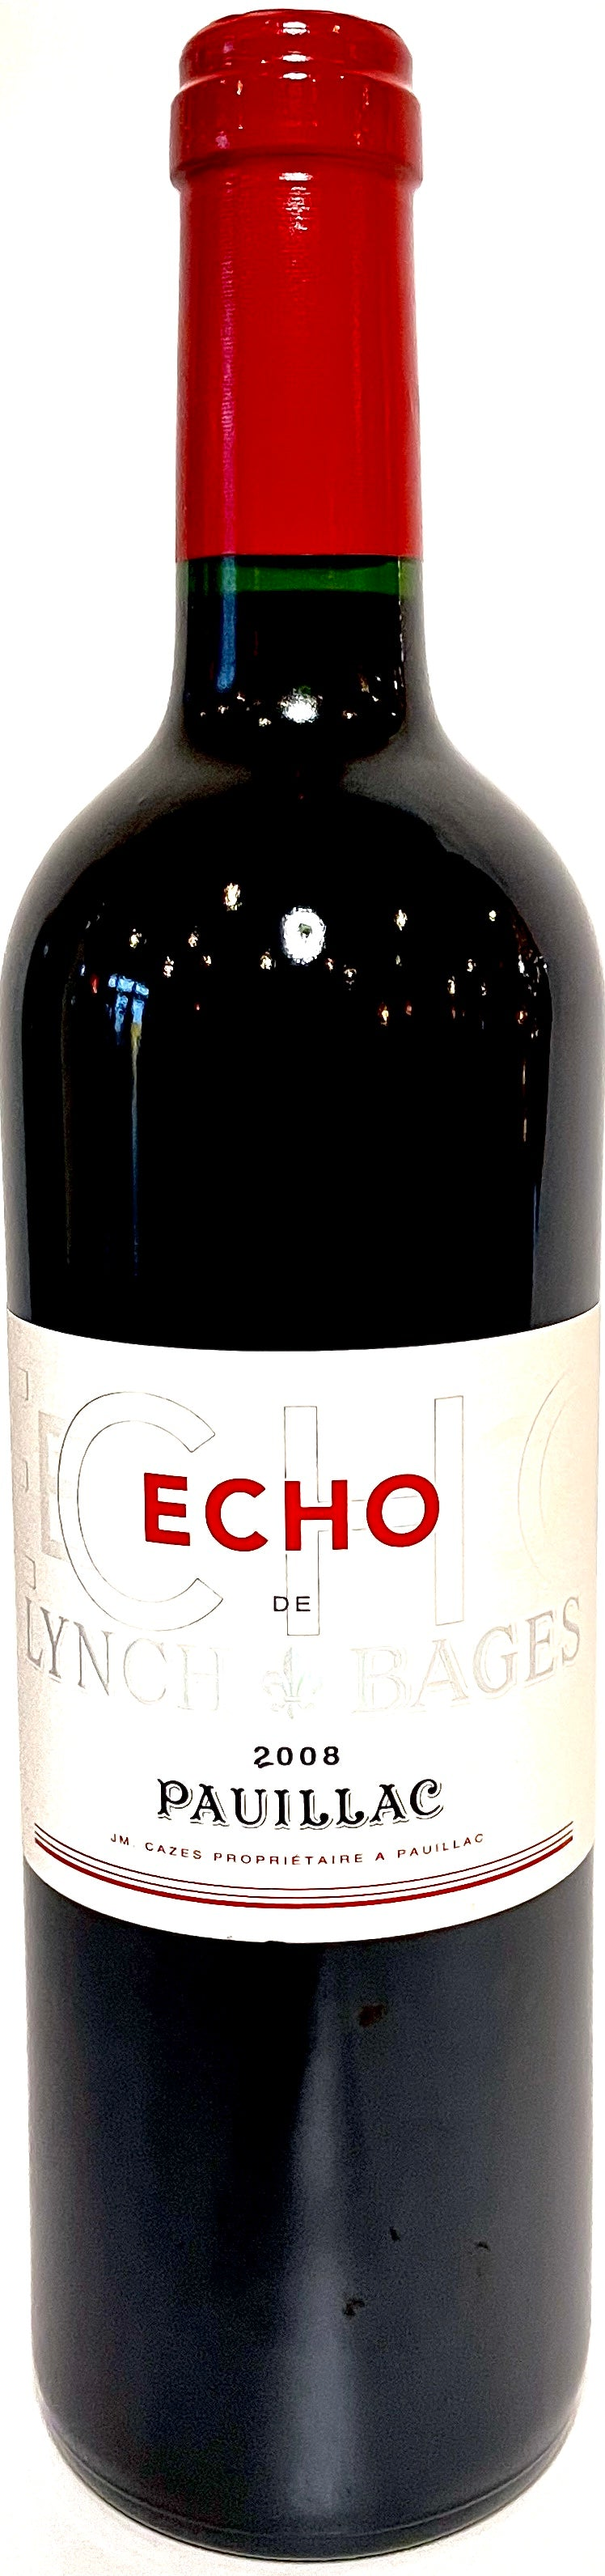 ECHO de Lynch Bages 2008